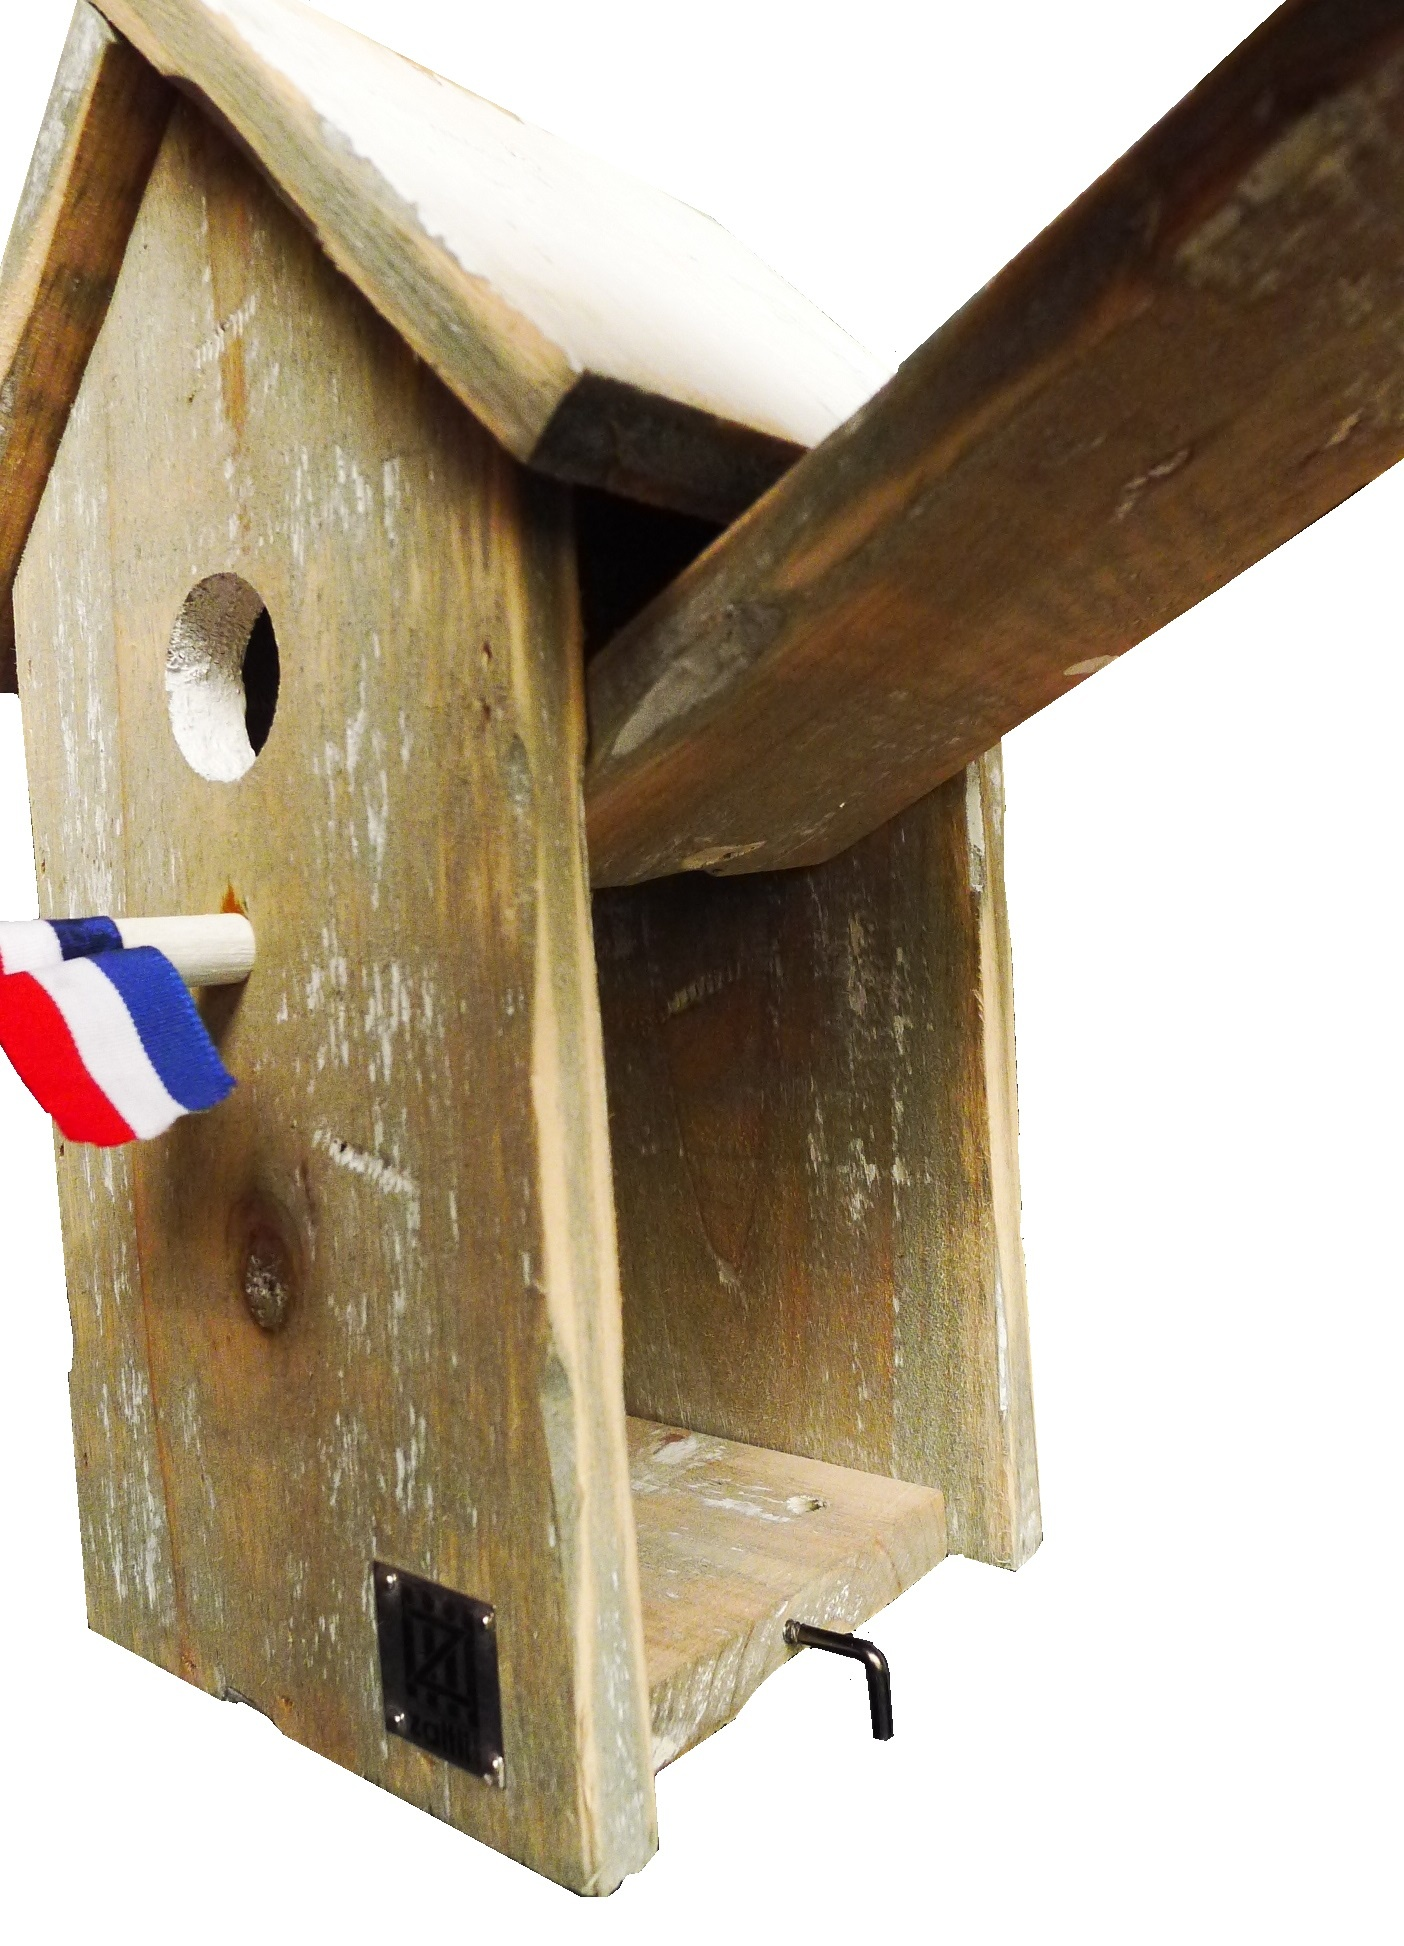 birdhouse old dutch stB pointed roof-3